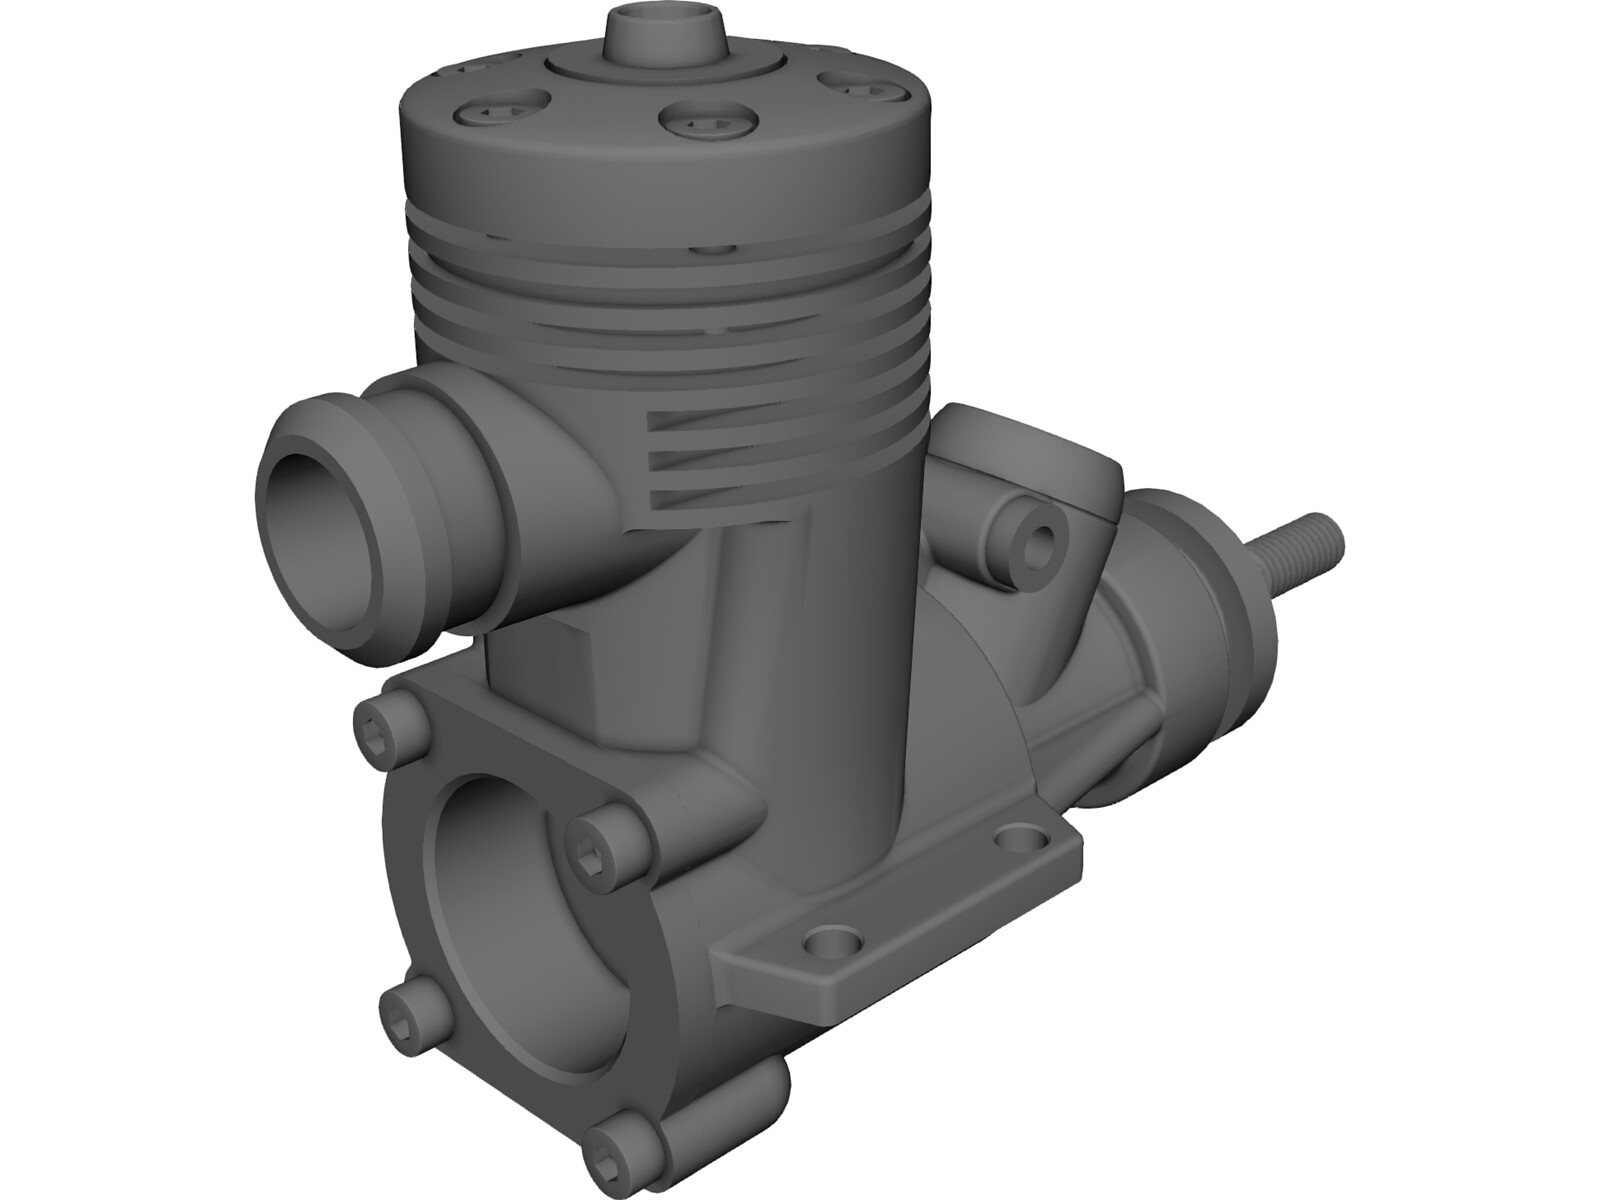 Rc Engine Model 2cc 3d Cad Model Download 3d Cad Browser